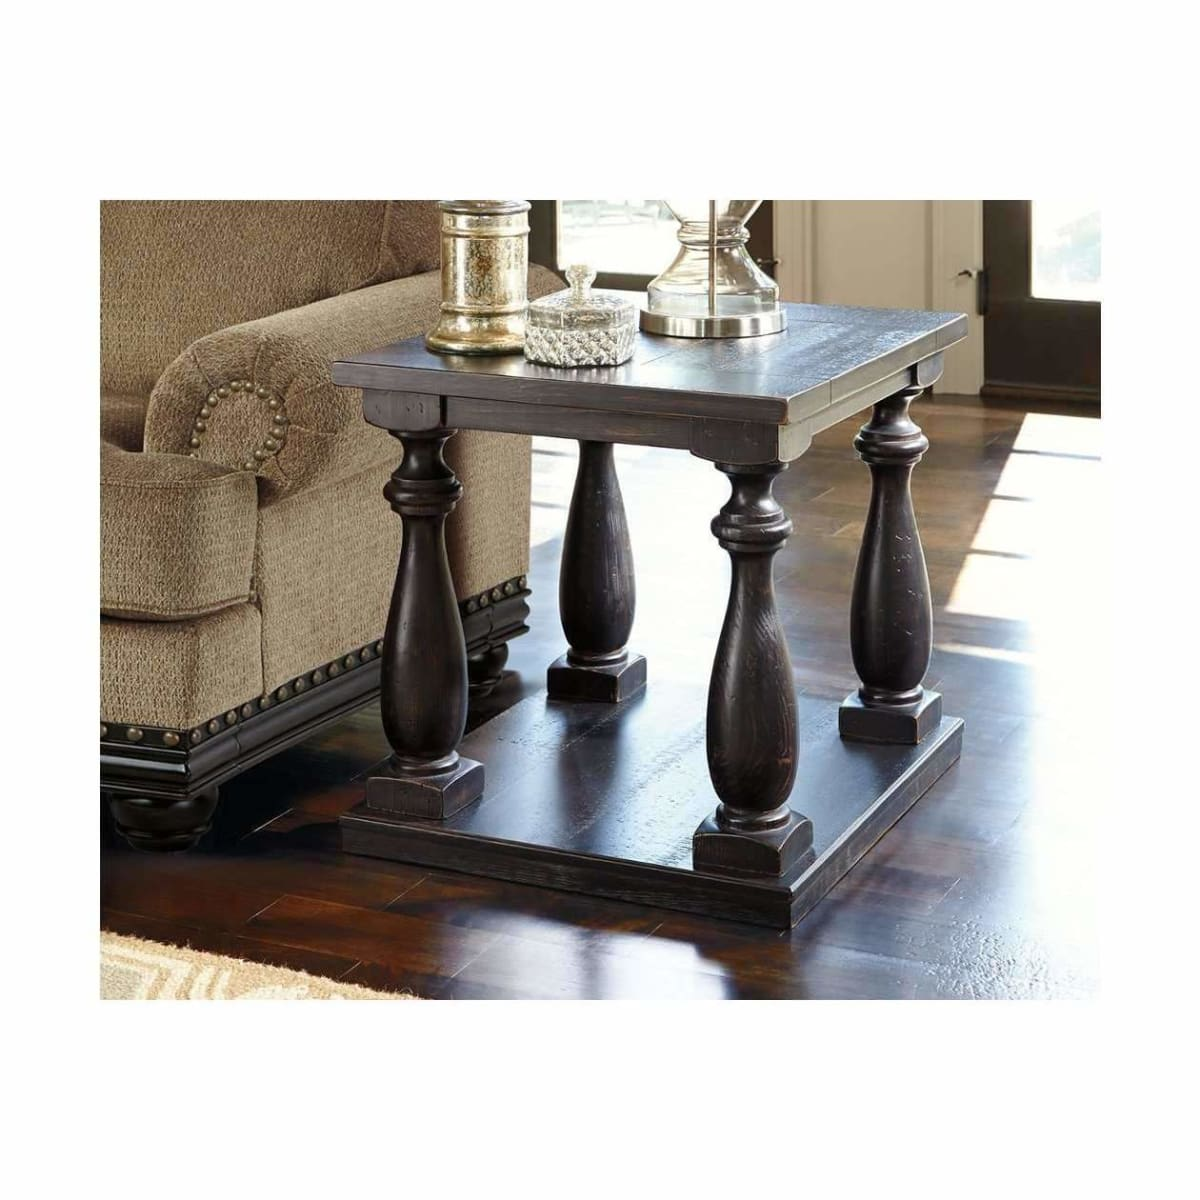 Mallacar End Table - END TABLE/SIDE TABLE